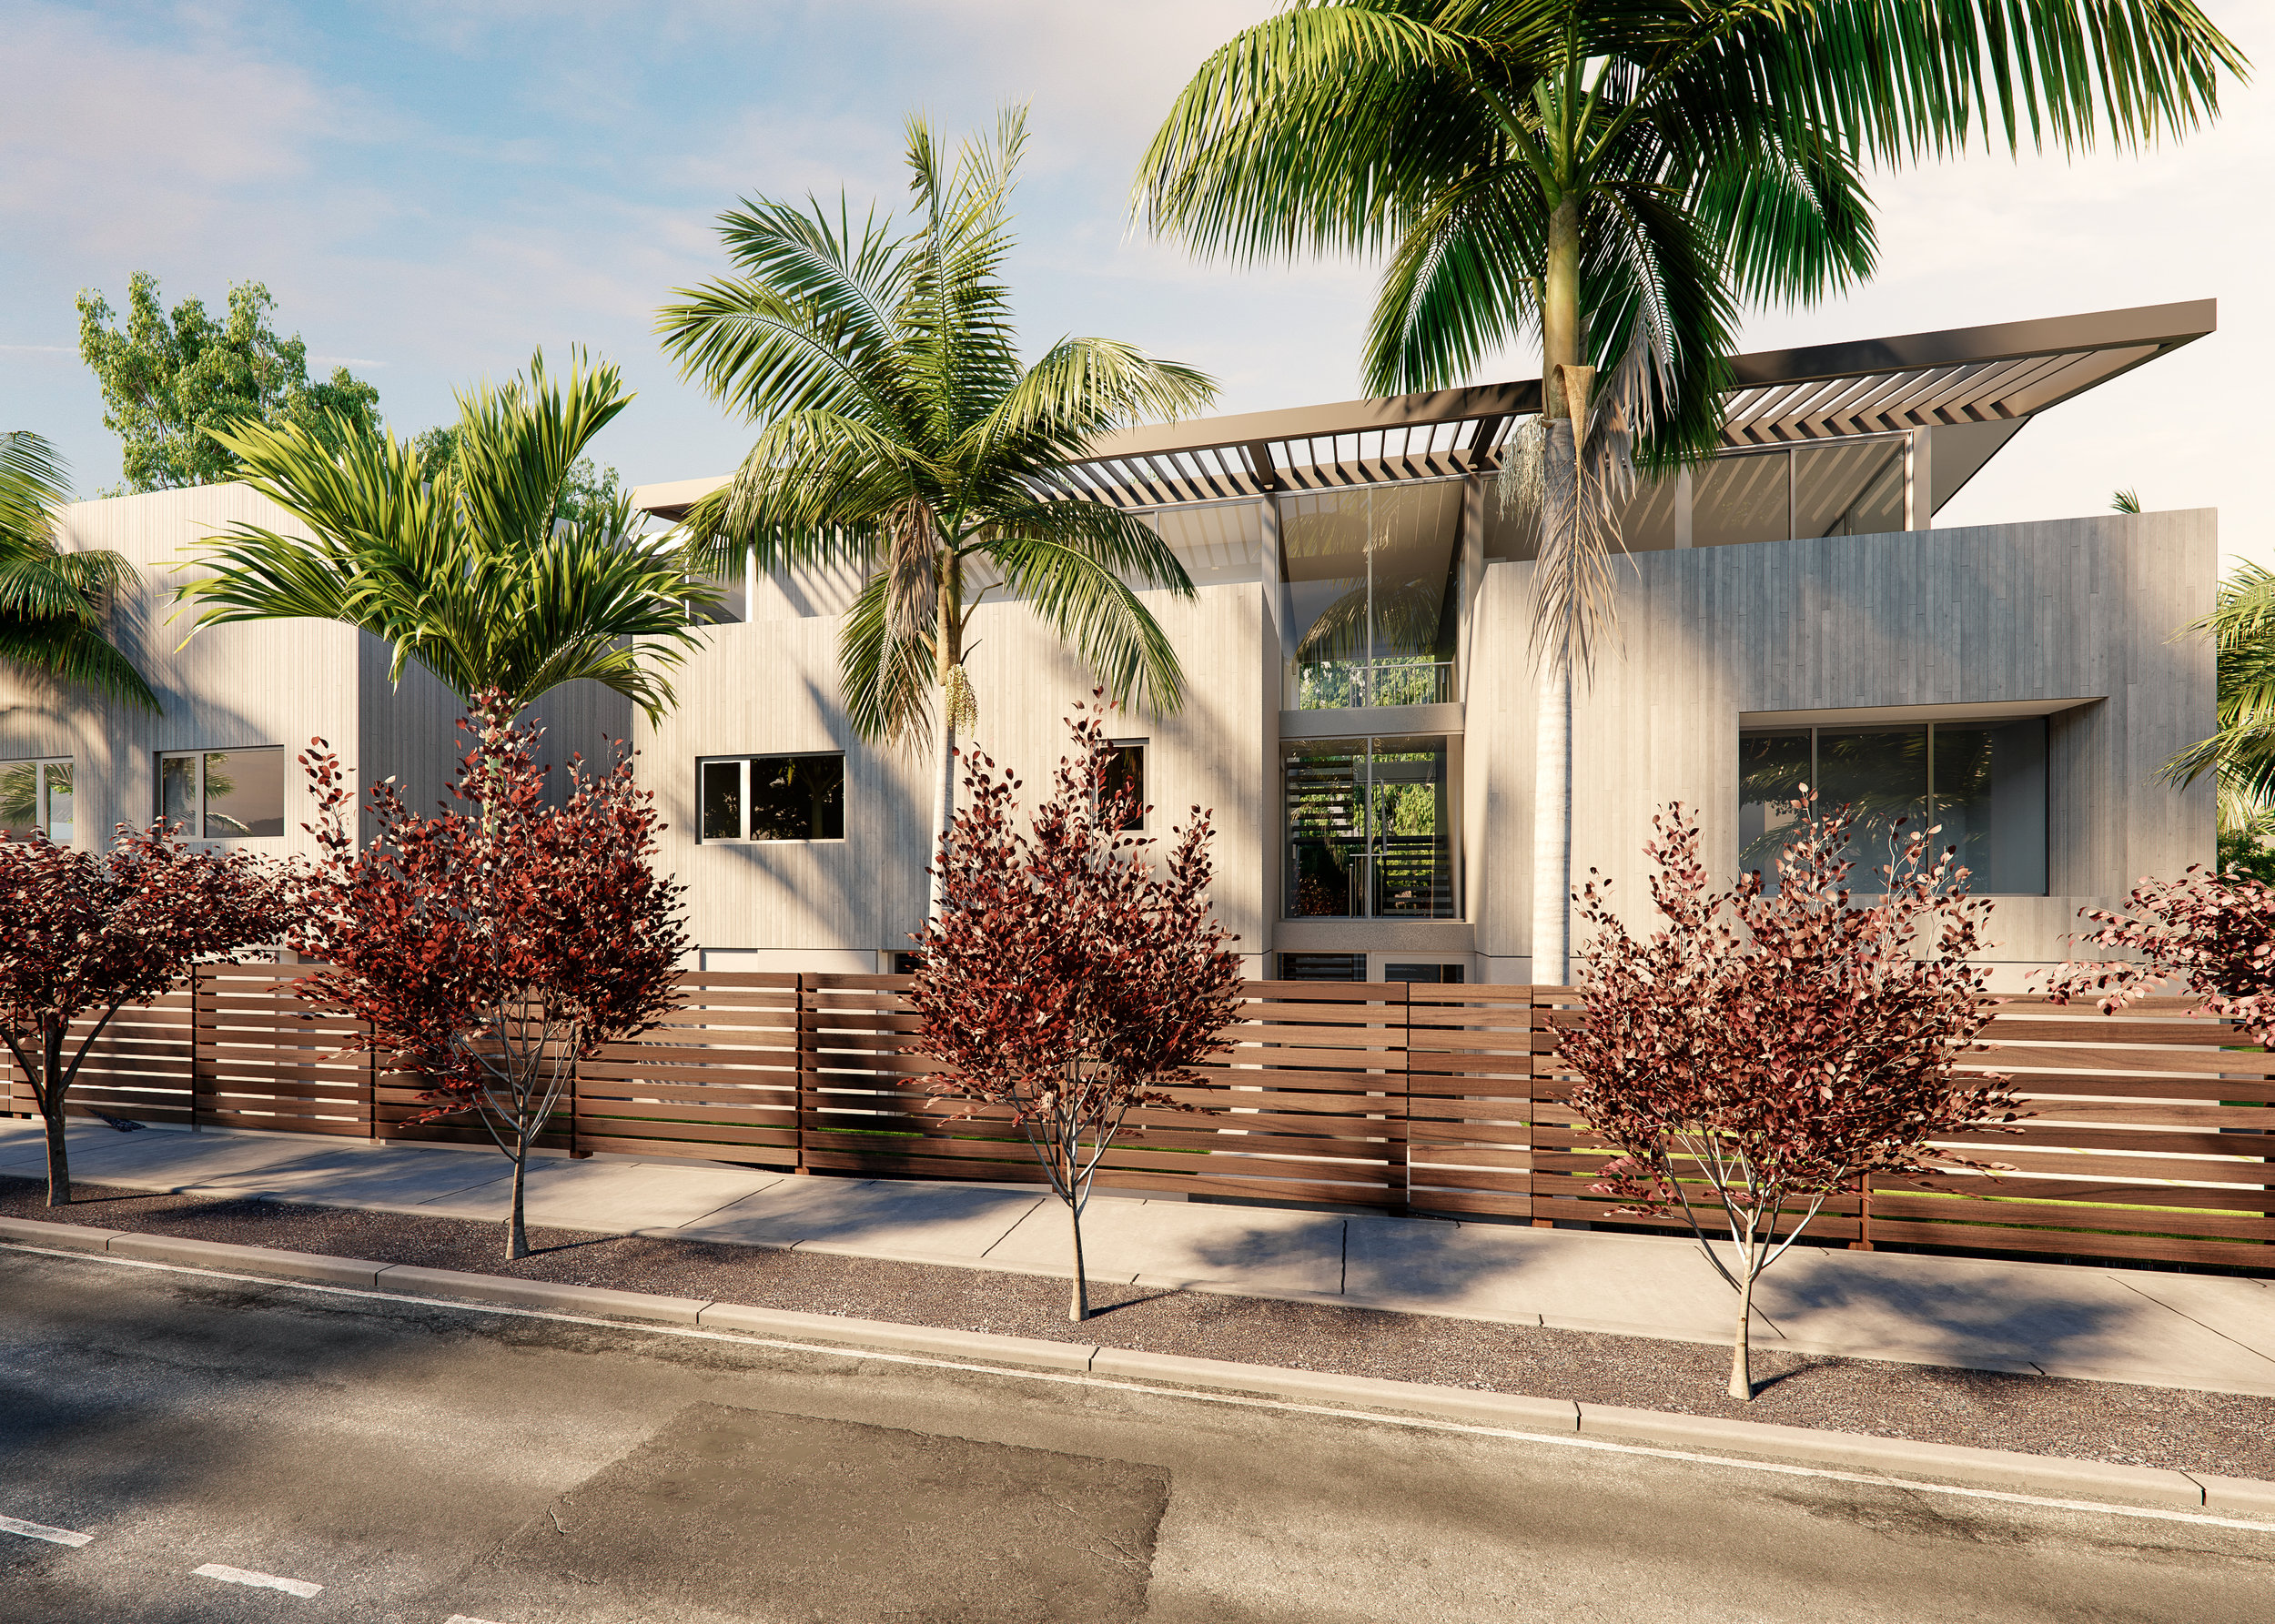 stunning architectural new construction in venice estimated completion april 2020 location & price upon request